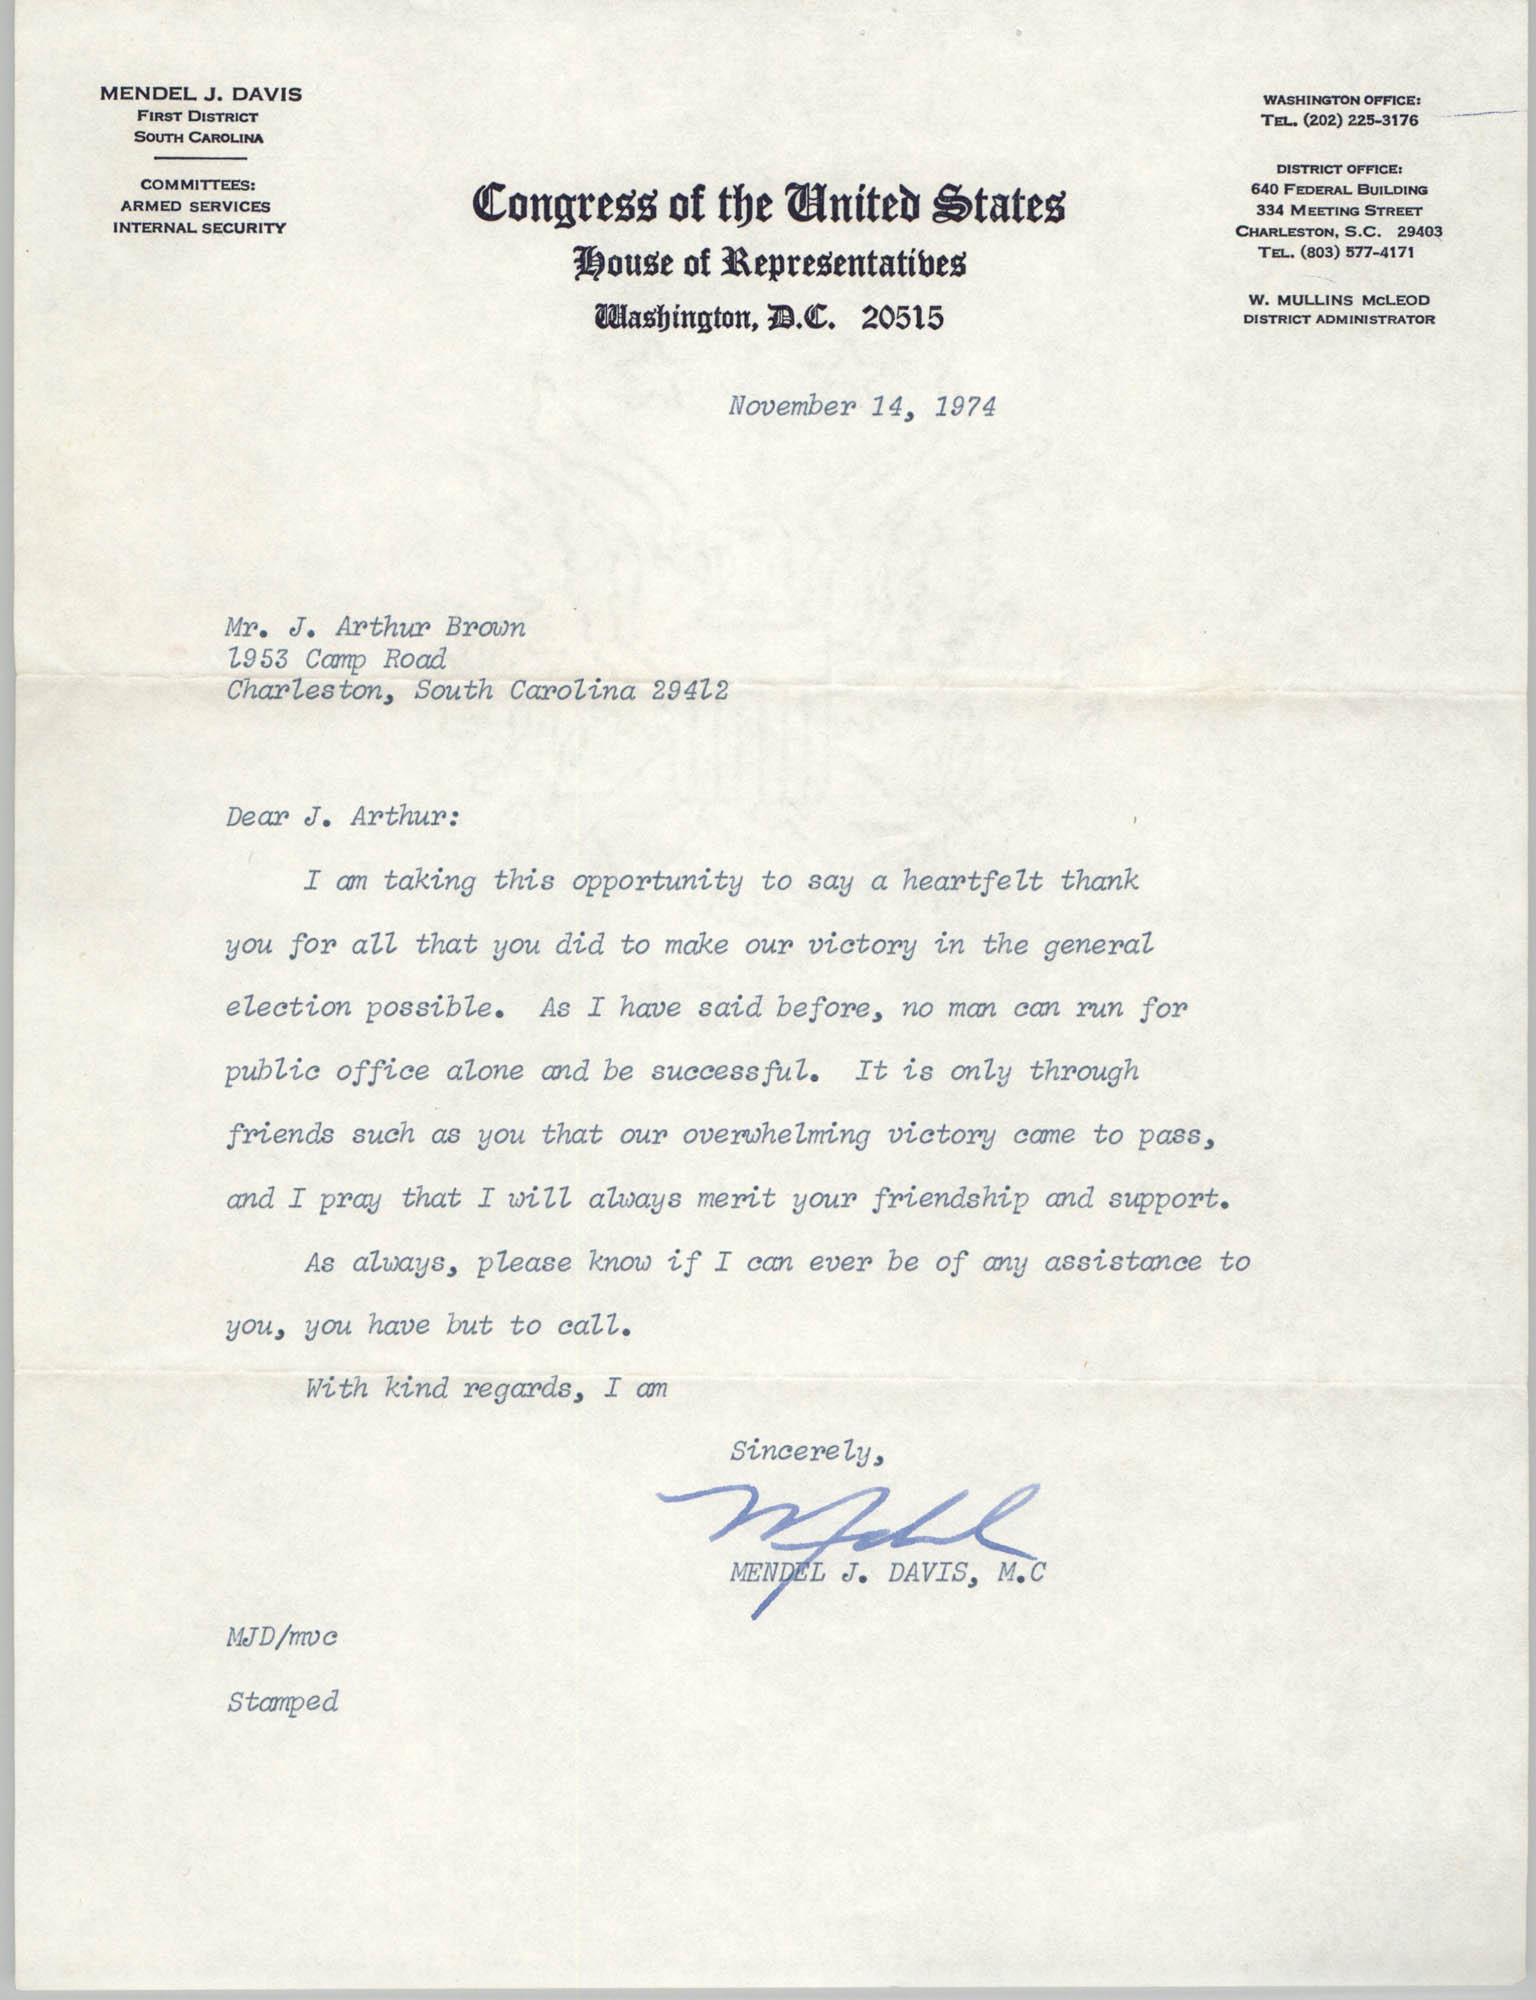 Letter from Mendel J. Davis to J. Arthur Brown, November 14, 1974